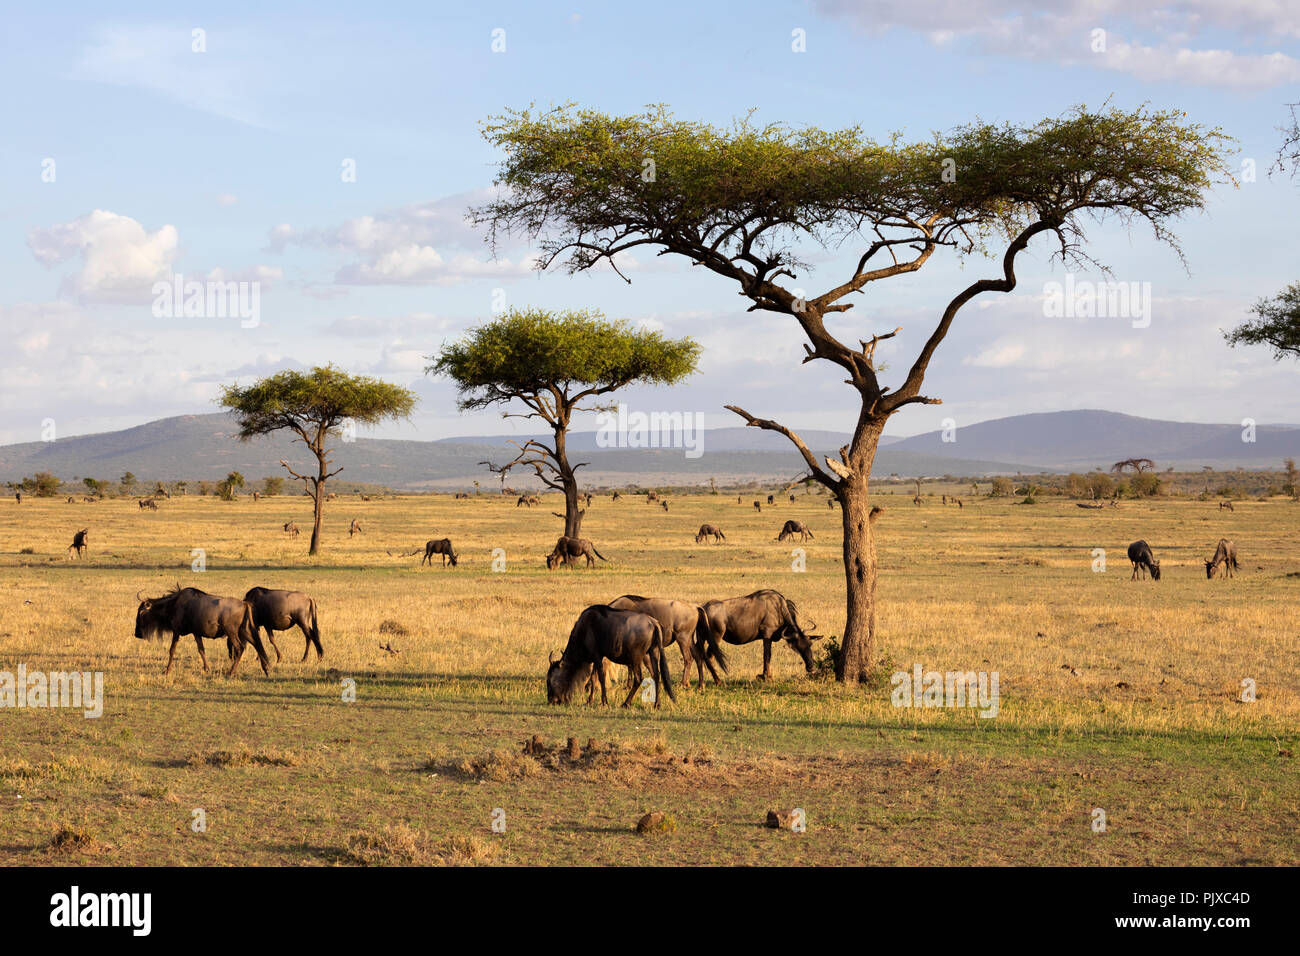 MAASAI MARA NATIONAL RESERVE, KENYA, AFRICA -  Wildebeest grazing in the Naboisho Conservancy with acacia trees and mountains in evening sunlight Stock Photo